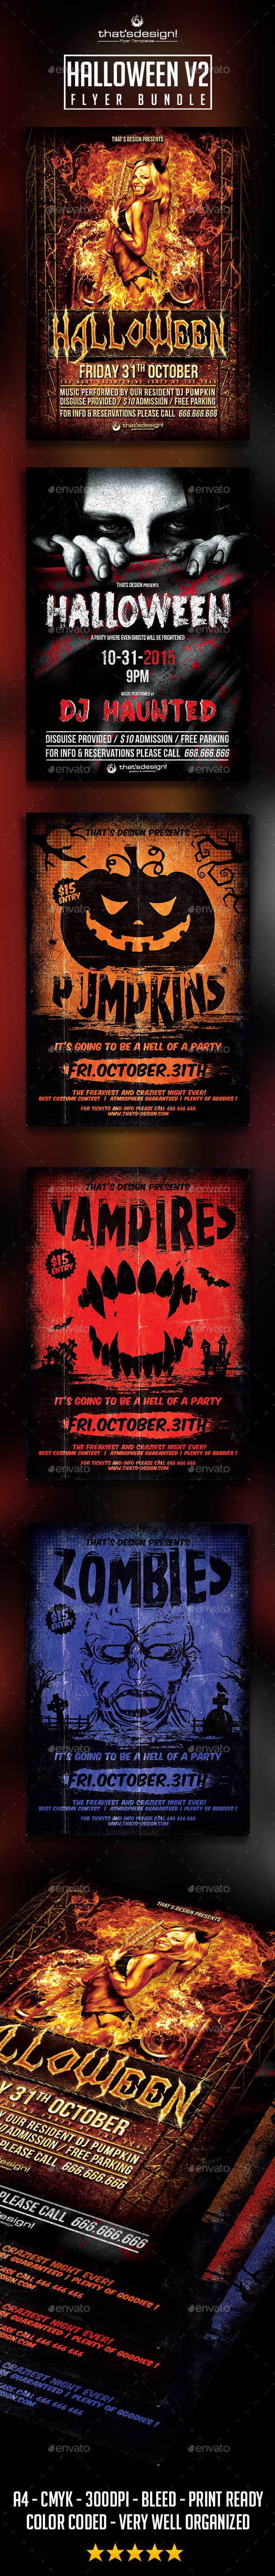 GraphicRiver Halloween Flyer Bundle V2 8790288